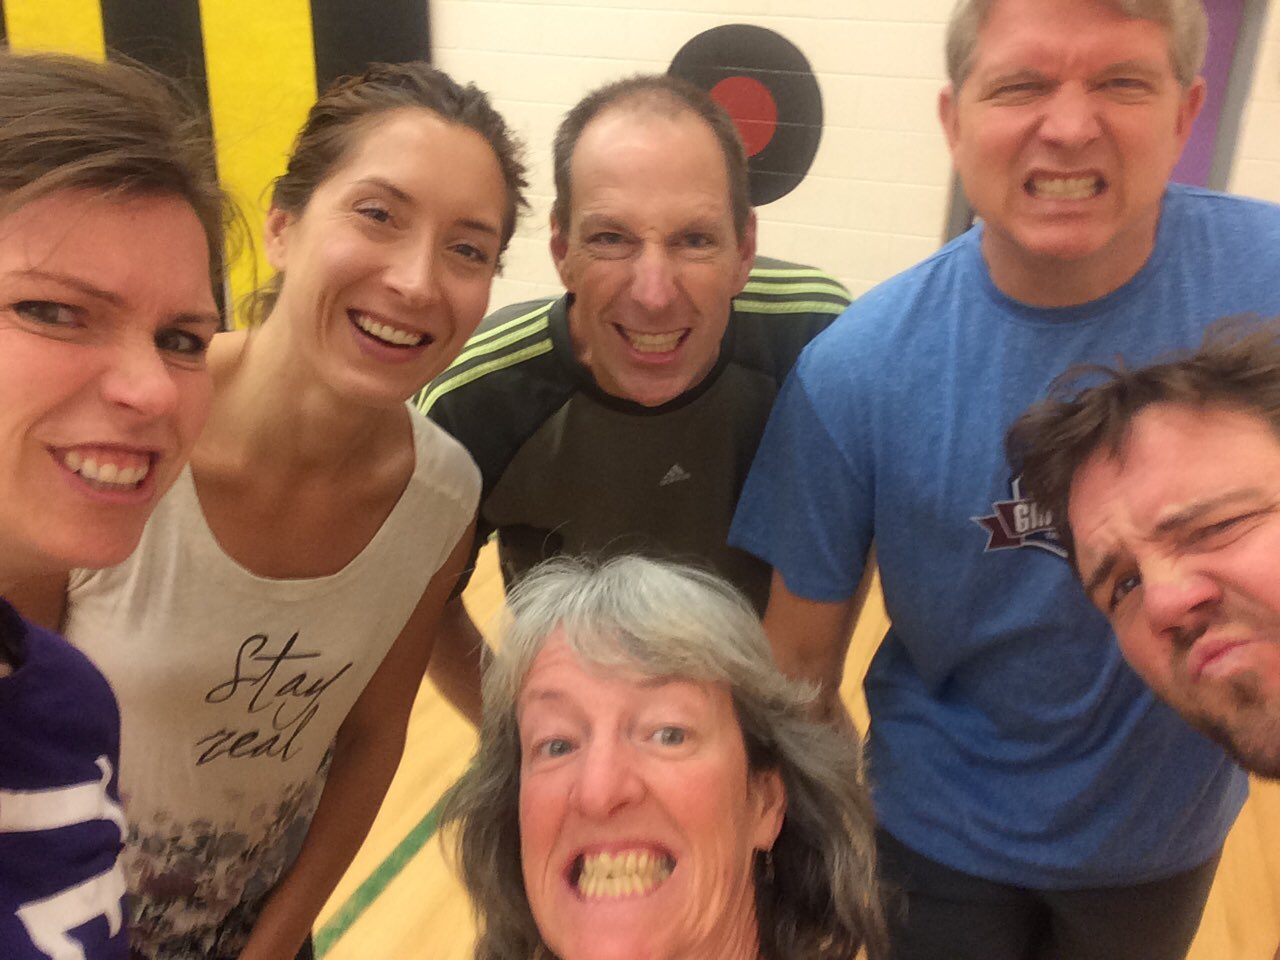 Getting are game on for staff vs students basketball. #tldsblearns #healthytldsb @IrwinM_PS https://t.co/Q9G3umgUON